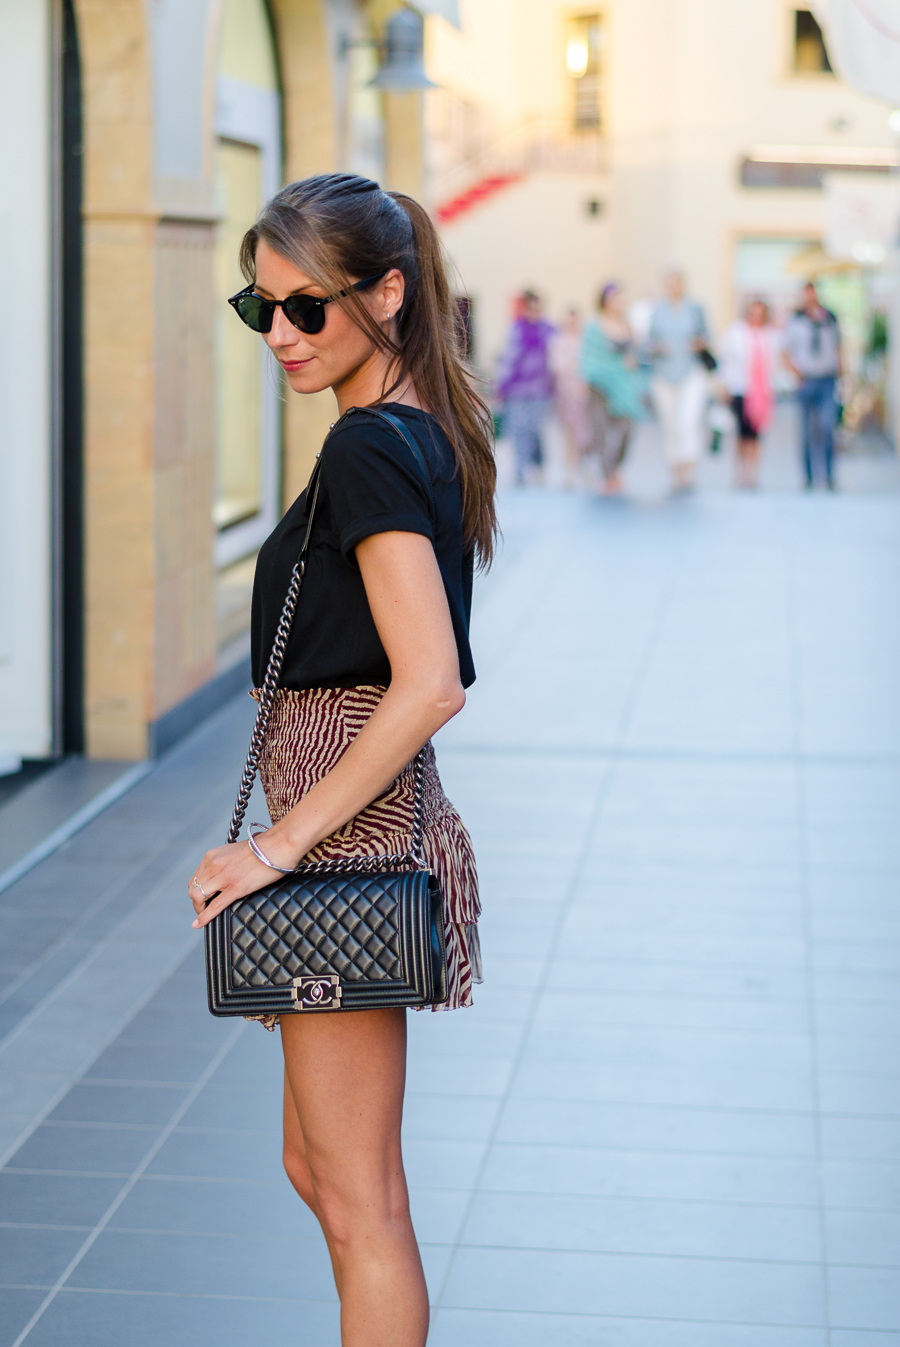 silk skirt isabel marant etoile outfit summer look